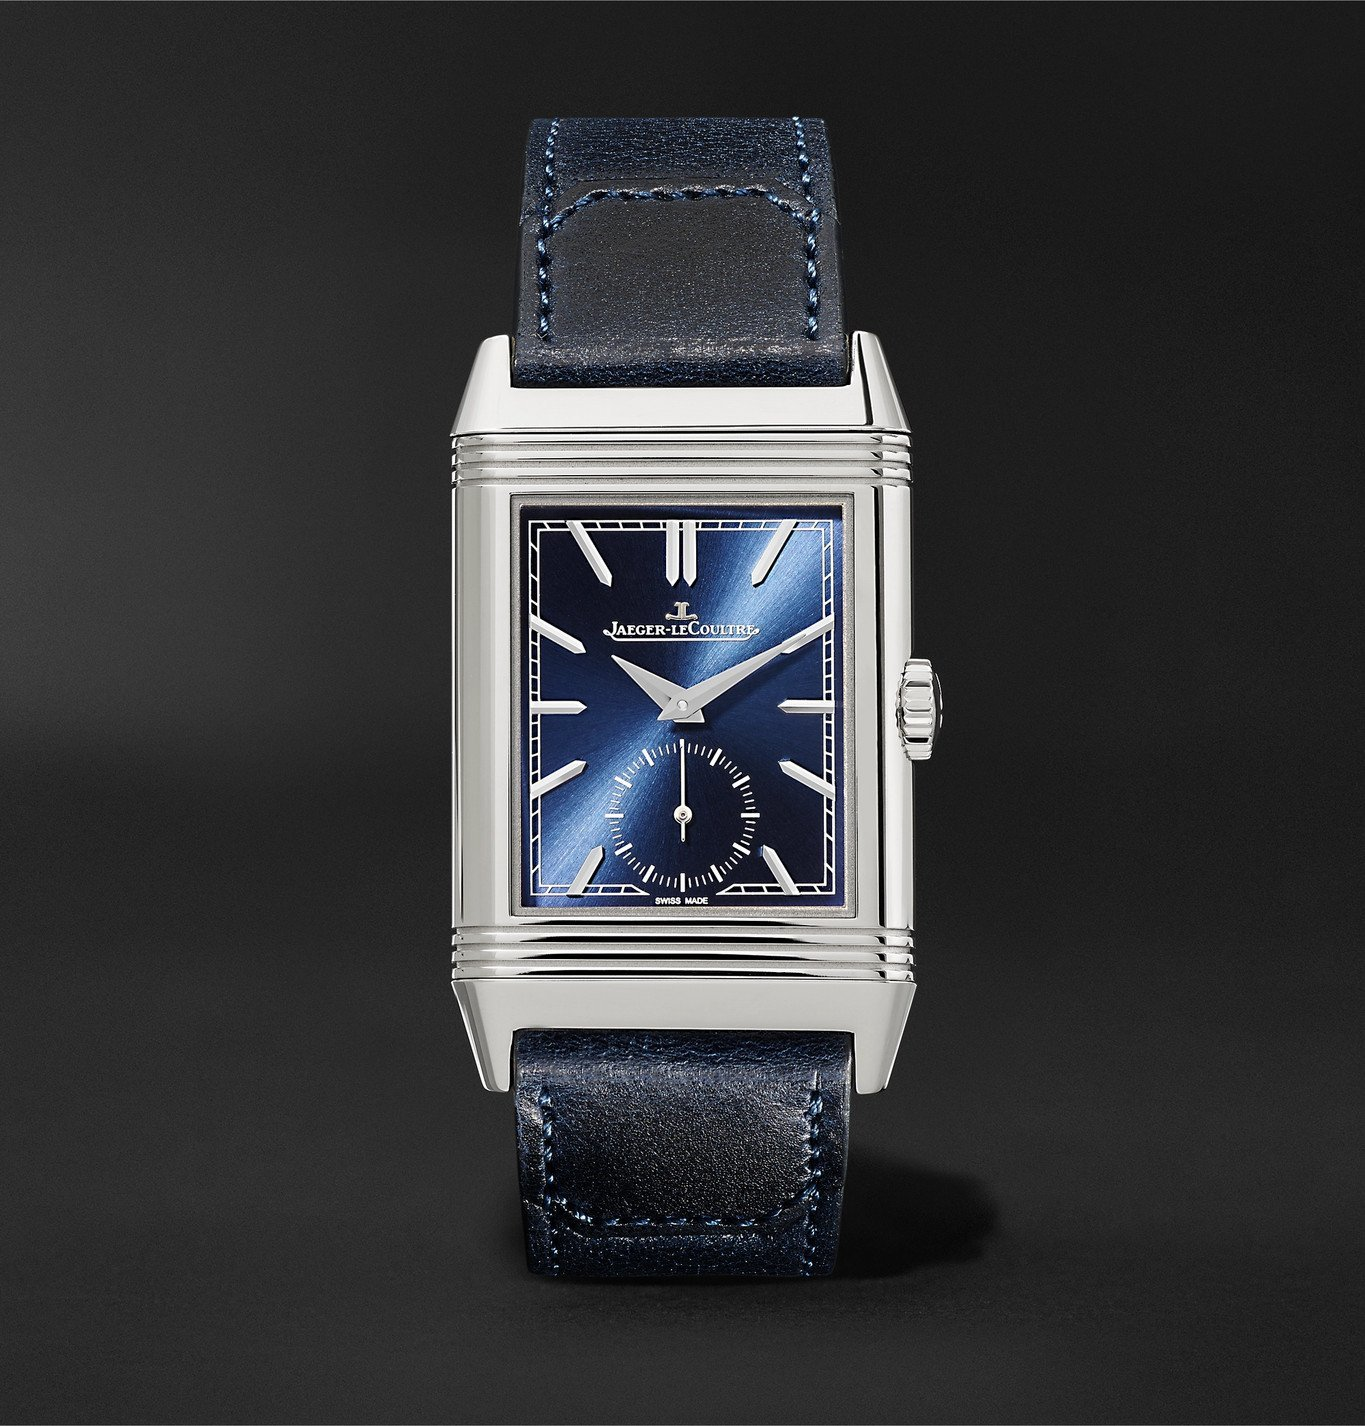 Photo: Jaeger-LeCoultre - Reverso Tribute Hand-Wound 27mm Stainless Steel and Leather Watch, Ref. No. Q3978480 - Unknown